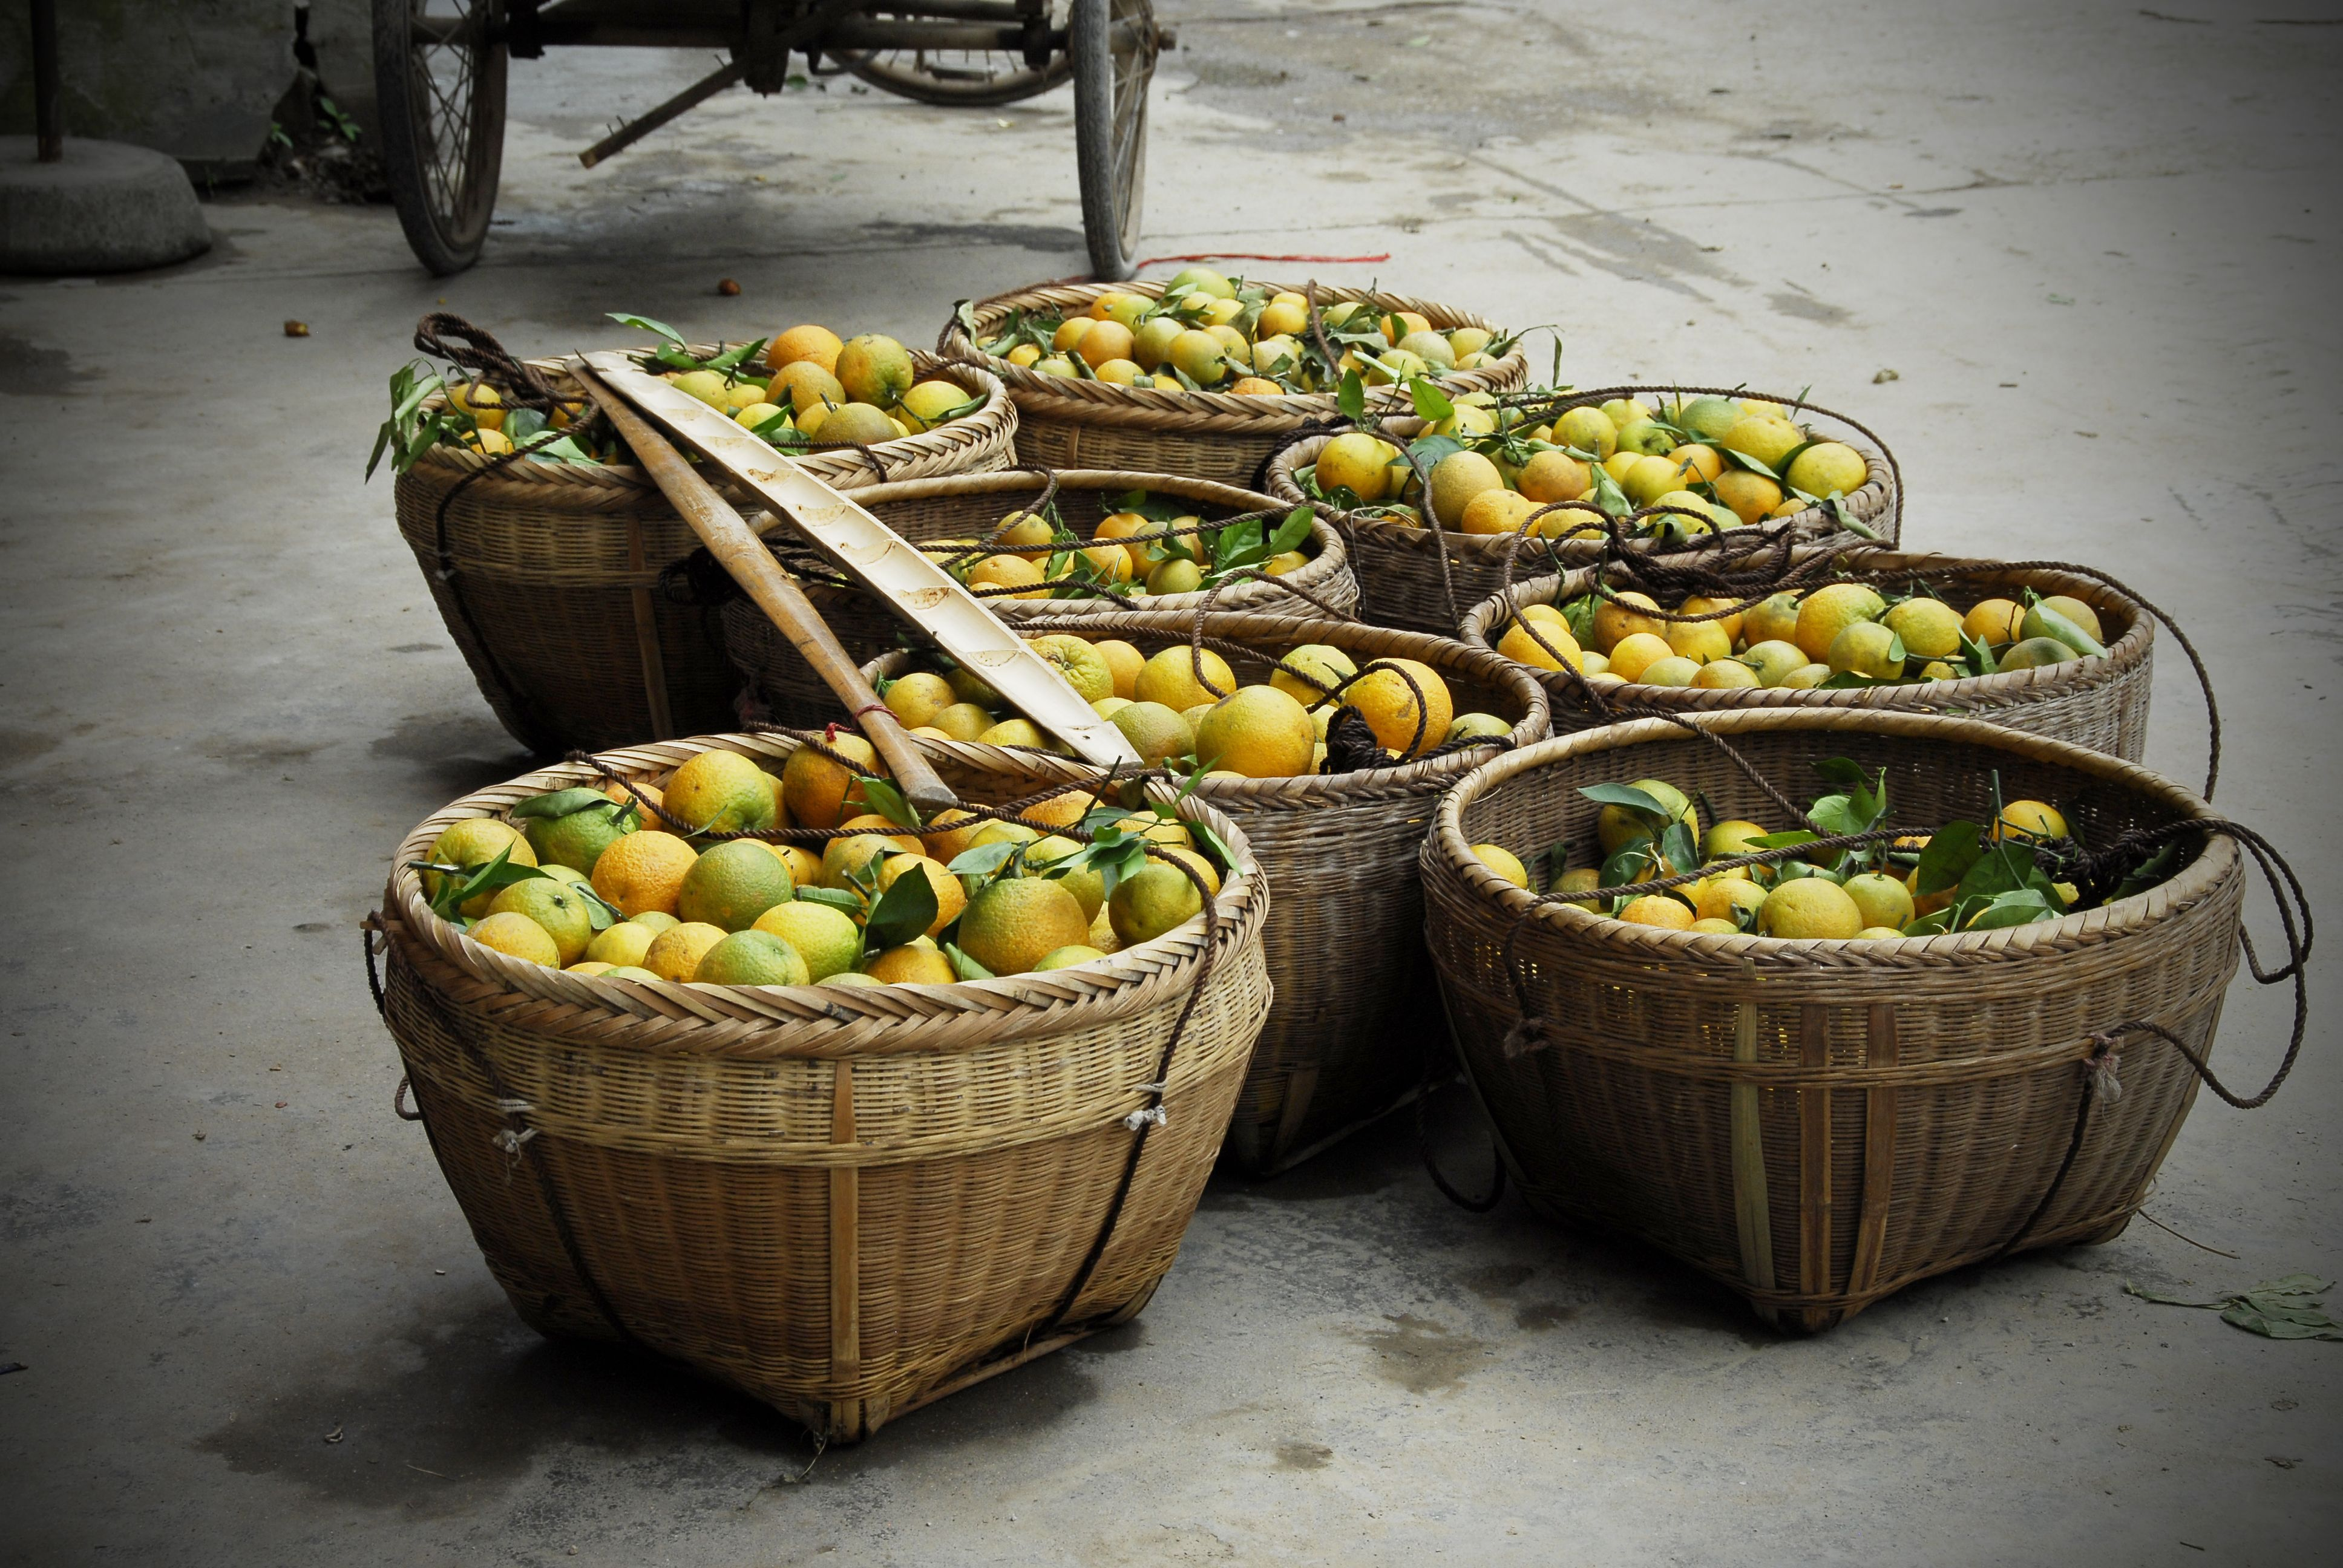 Baskets of peaches xing ping market china peach food